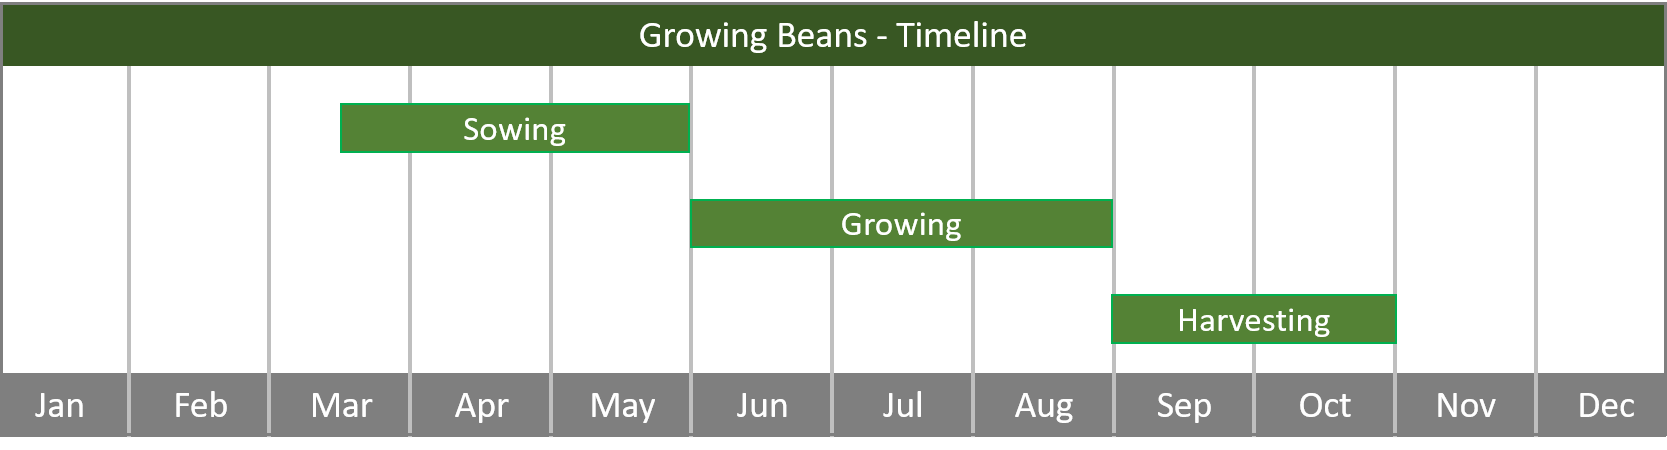 how to grow beans from seed to harvest at home timeline